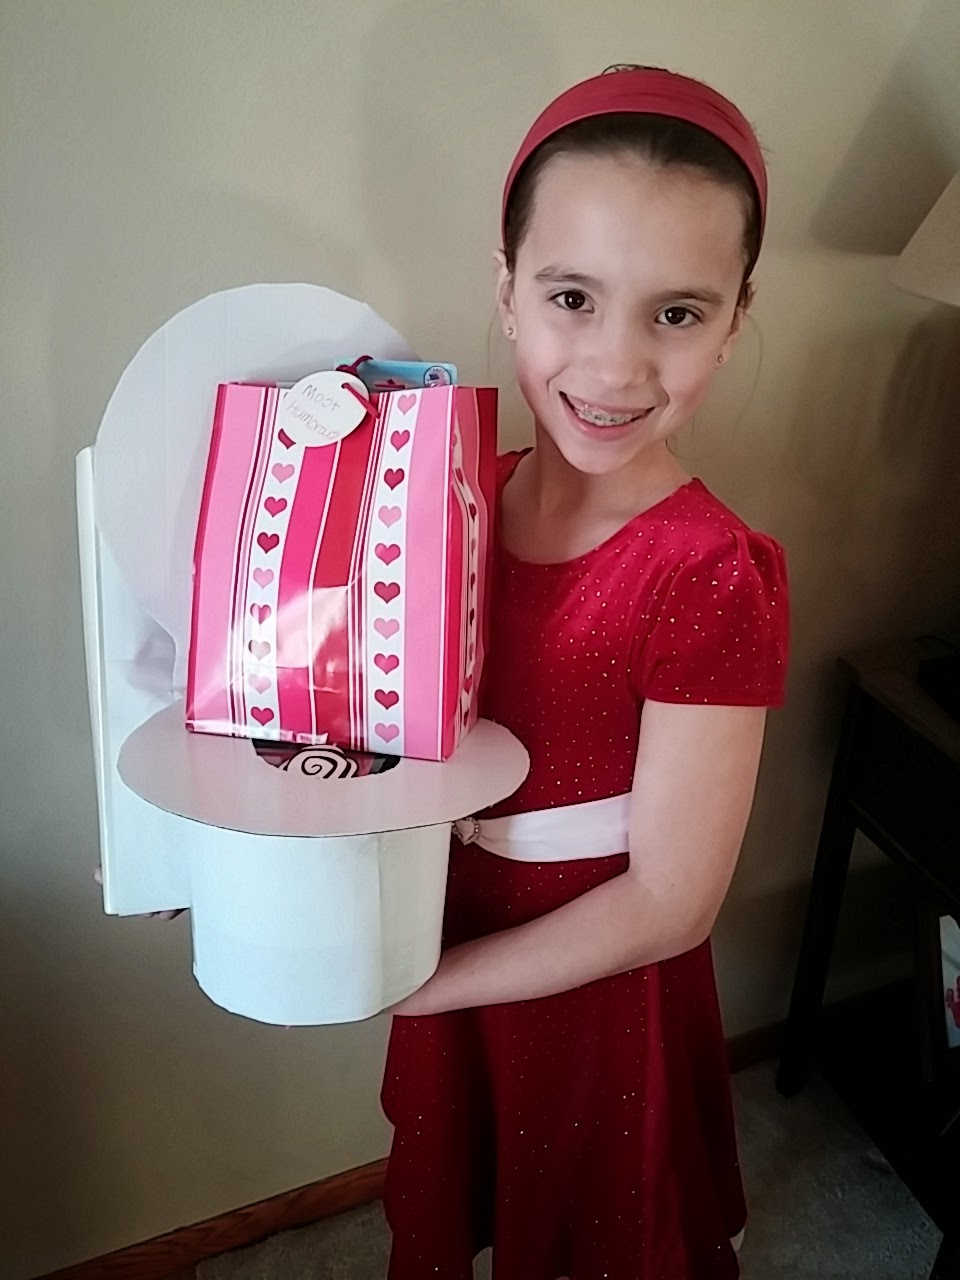 Hereu0027s Our Girl Posing With Her Toilet Bowl Valentine Box And Her Prize!